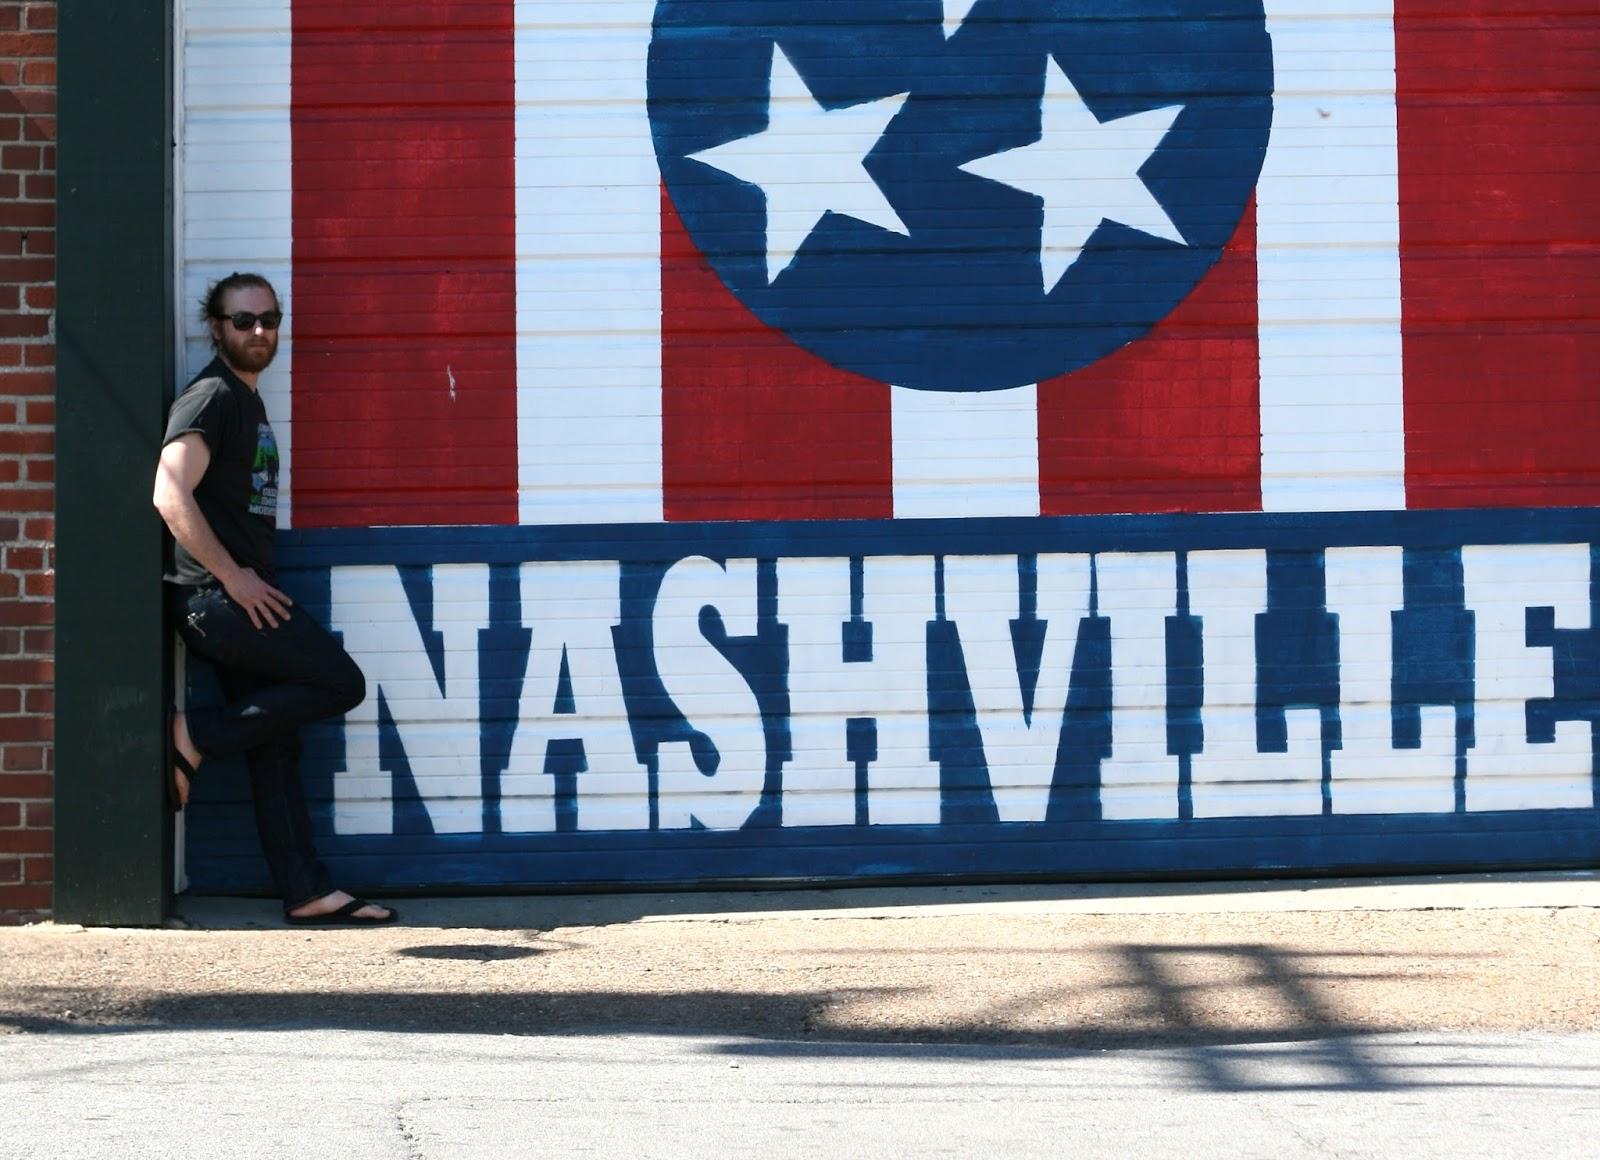 The Daily Wild Nashville Road Trip